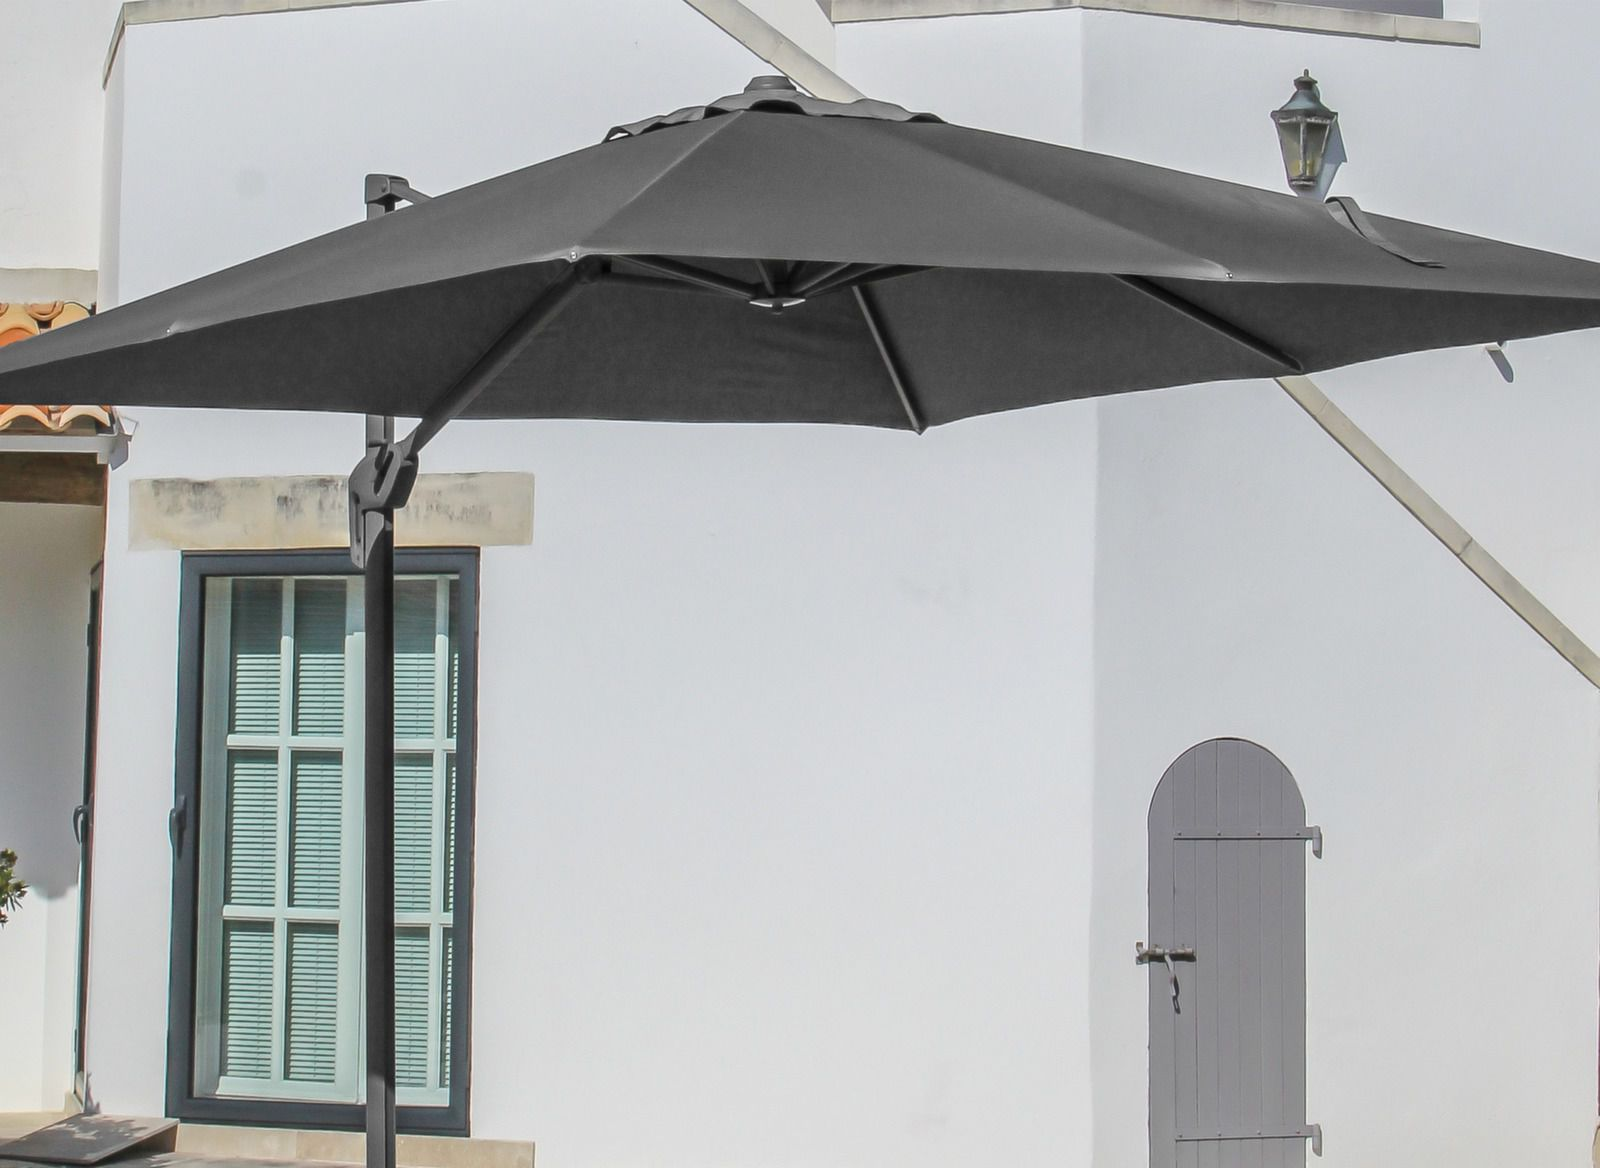 toile de parasol d port carr 3x3m accessoires parasol. Black Bedroom Furniture Sets. Home Design Ideas